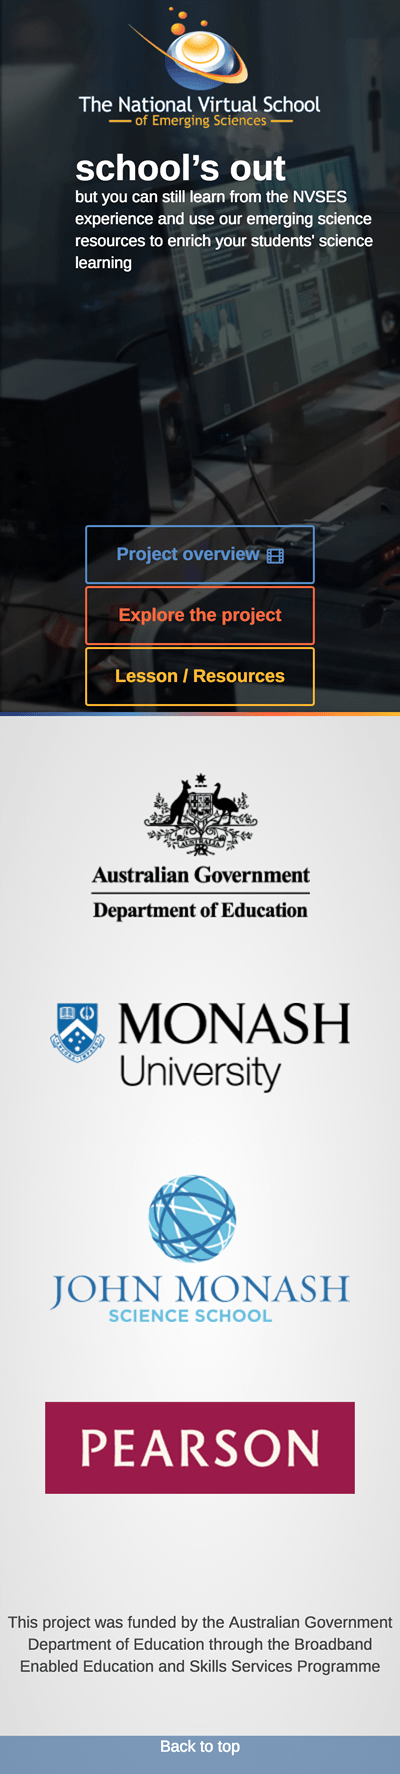 nvses.edu.au mobile screen shot